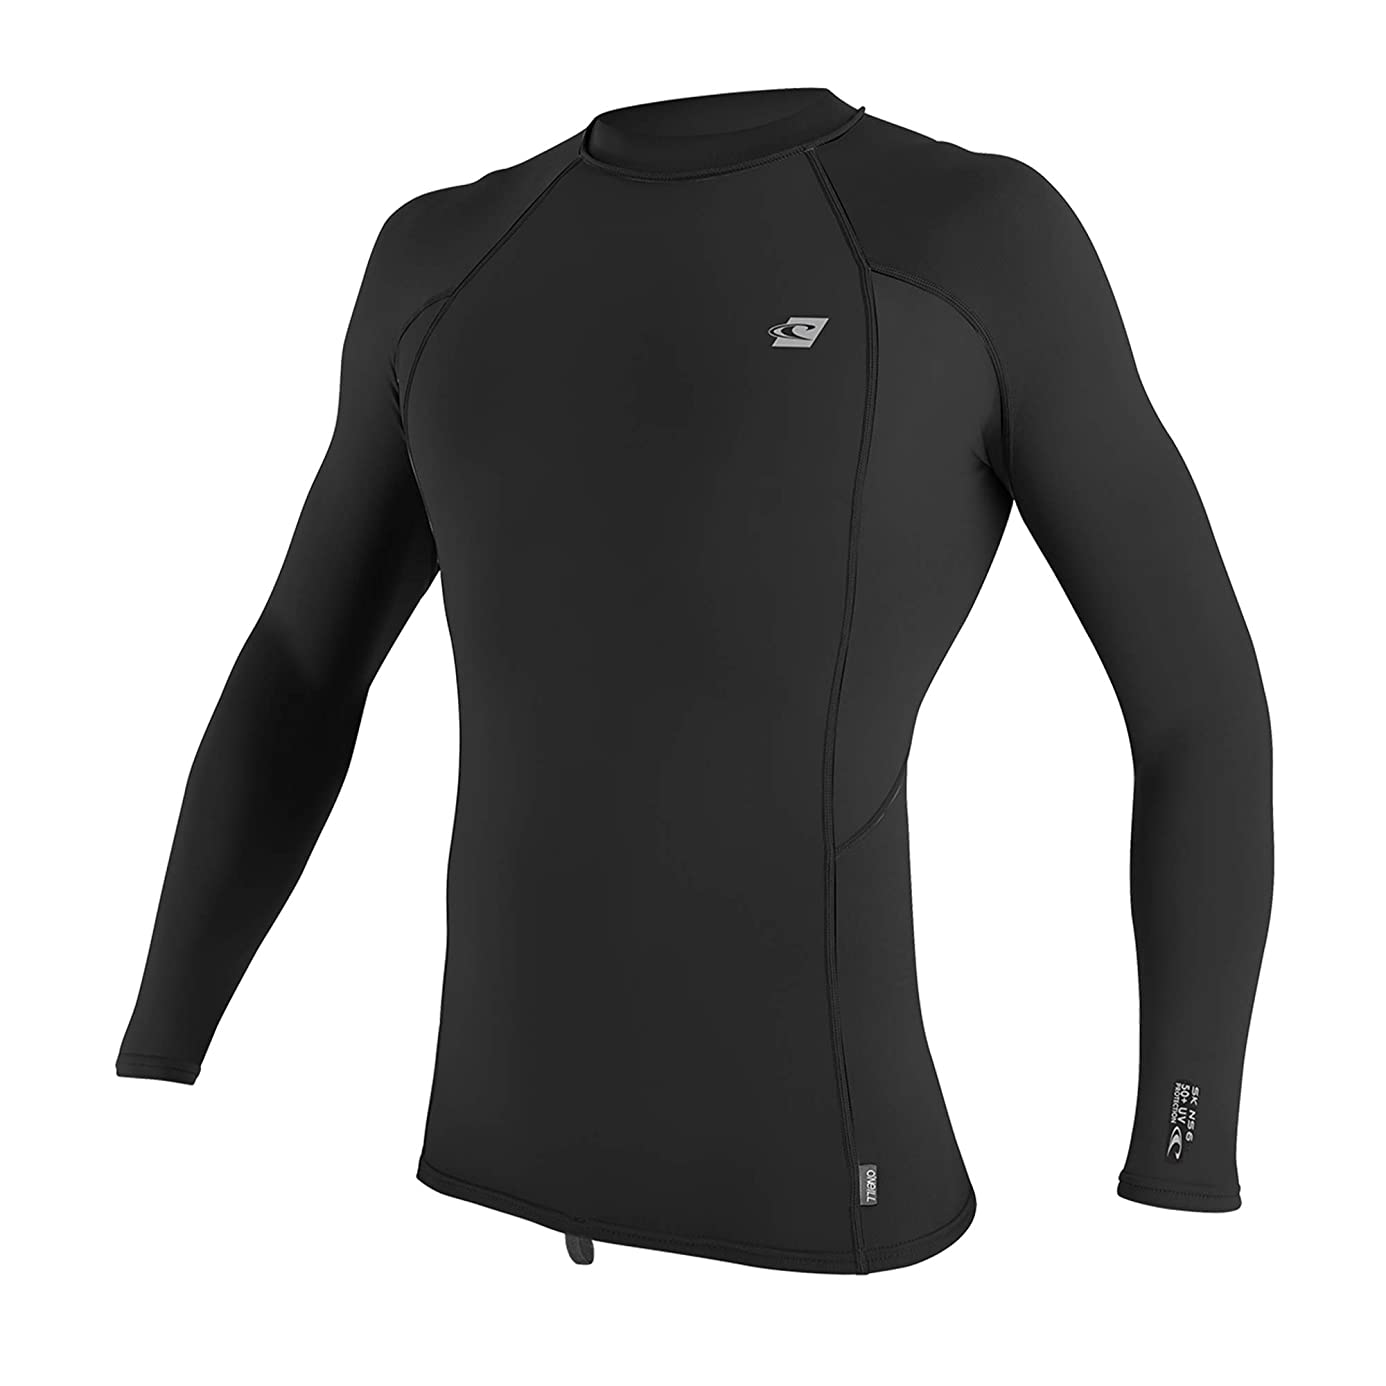 O'Neill Men's Premium Skins Upf 50+ Long Sleeve Rash Guard